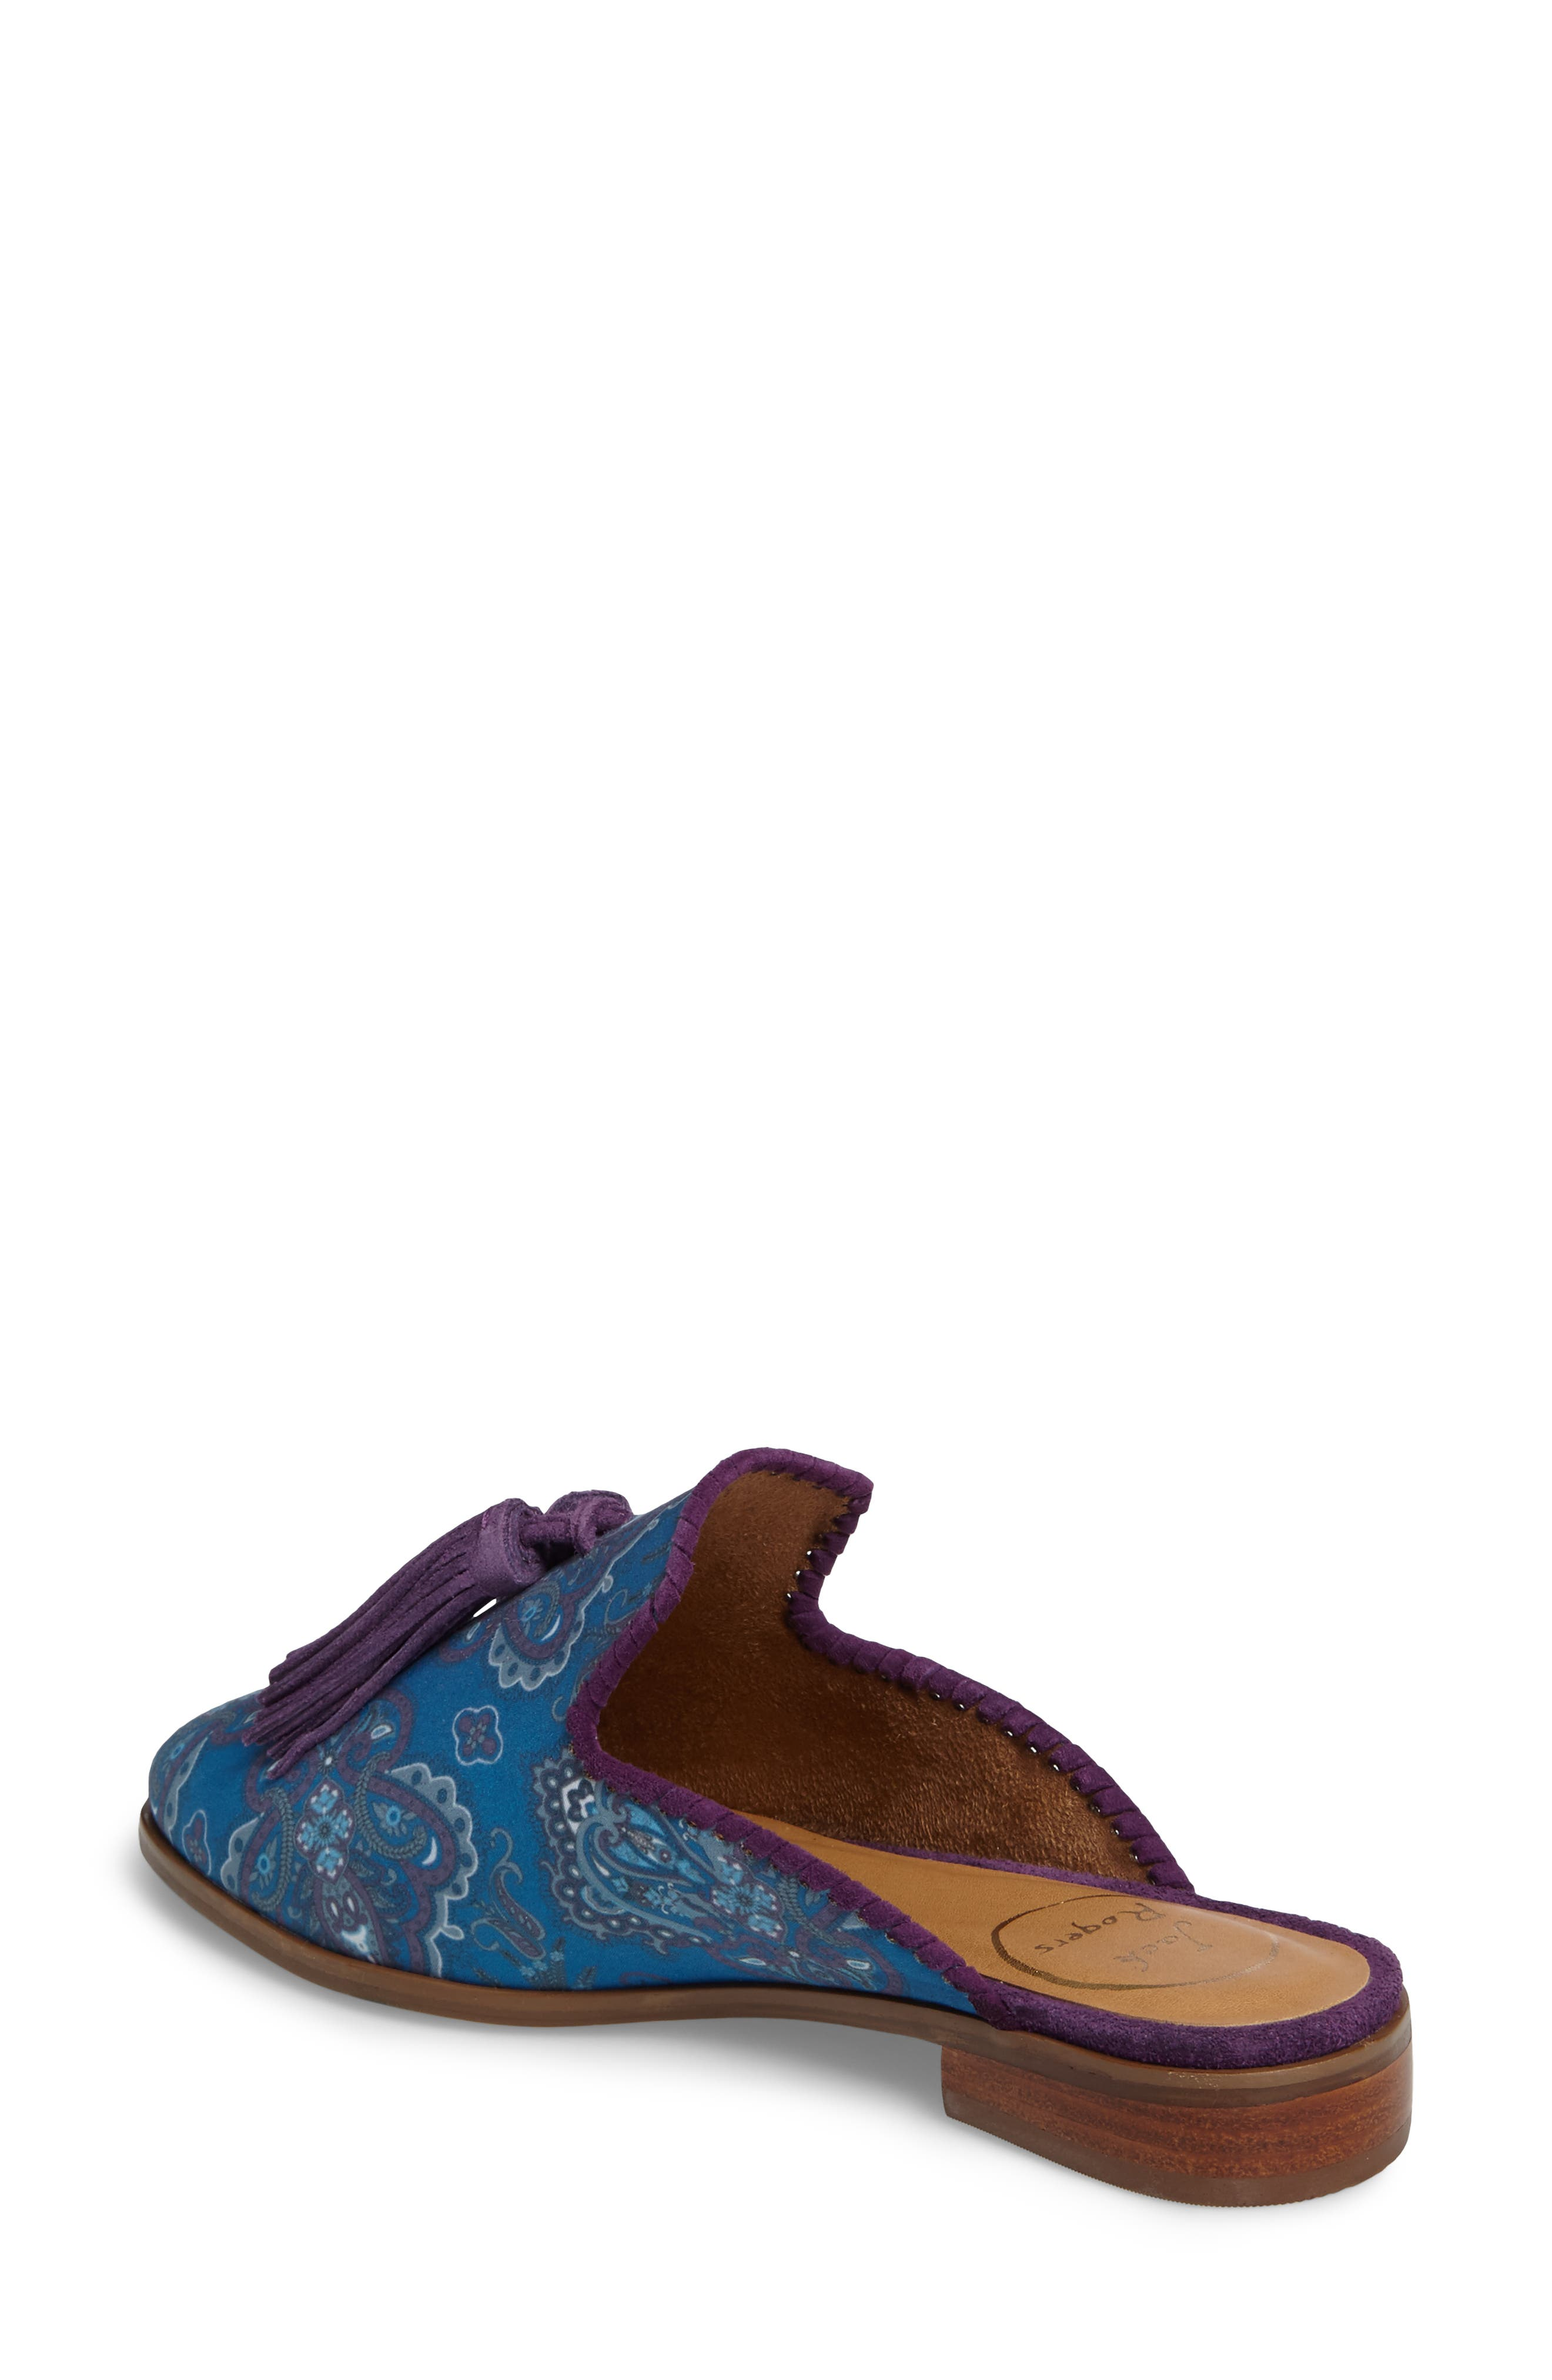 Delaney Tassel Mule,                             Alternate thumbnail 6, color,